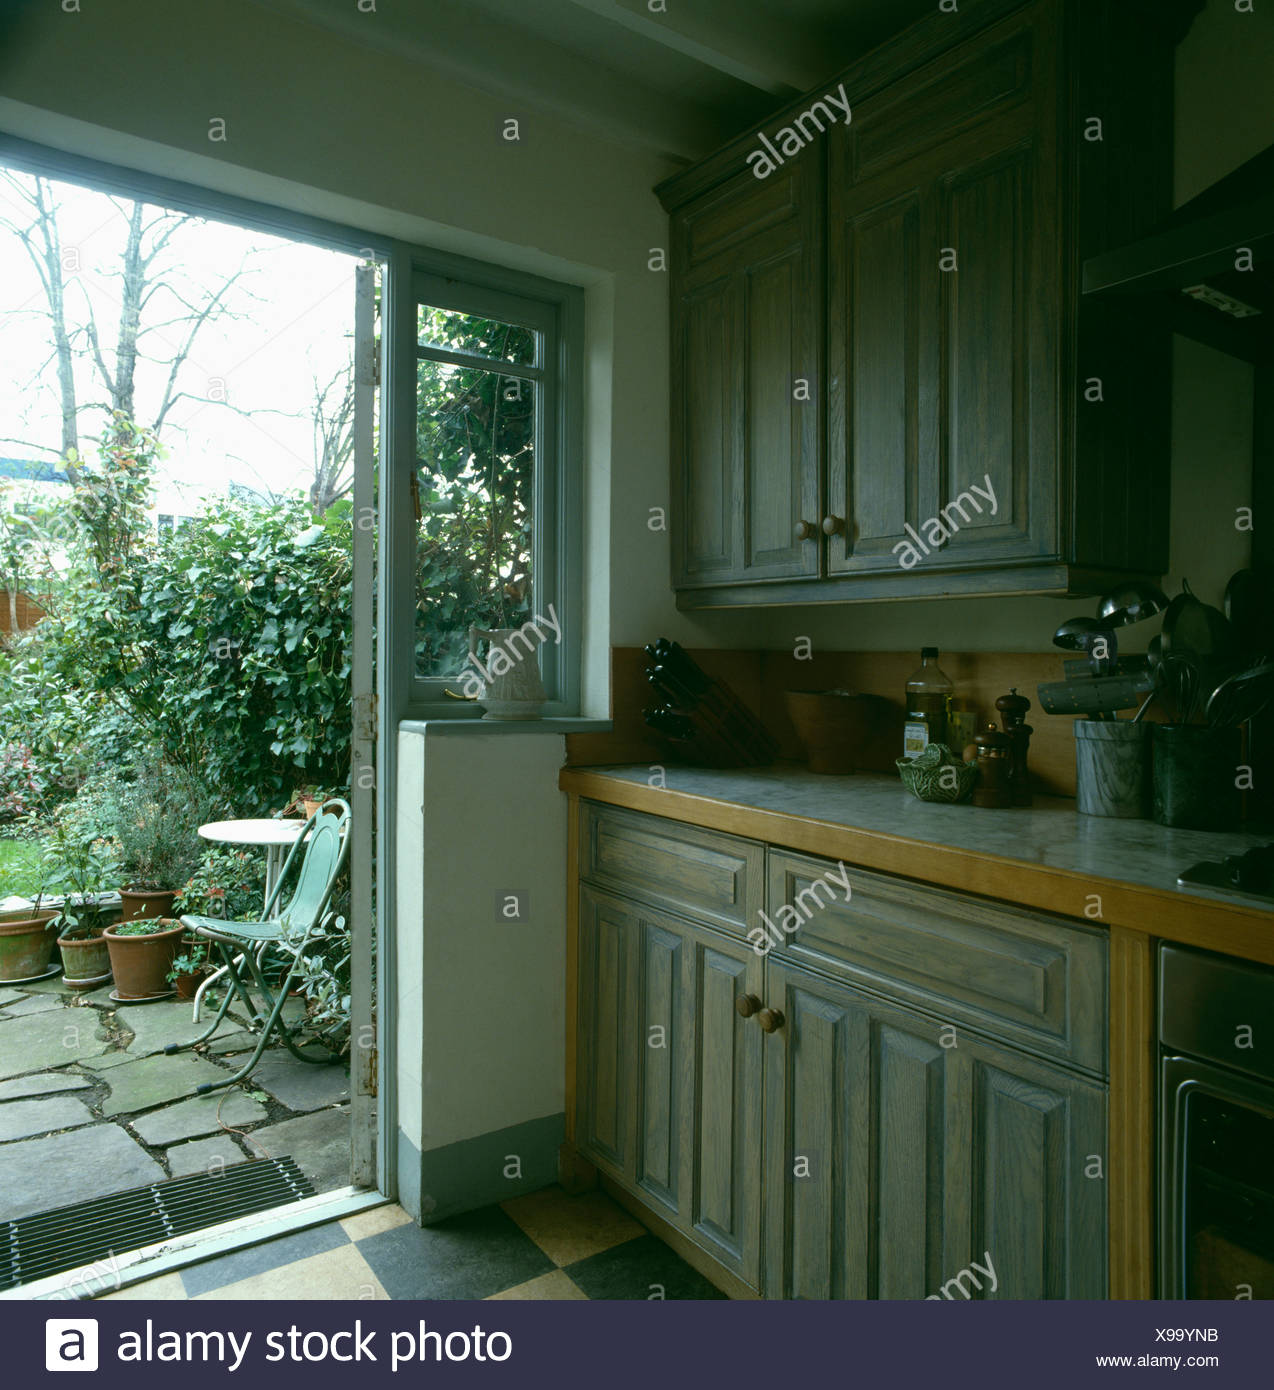 Open Kitchen Gate: Pale Grey Wood-stain Units In Kitchen With Patio Door Open To The Garden Stock Photo: 281117127